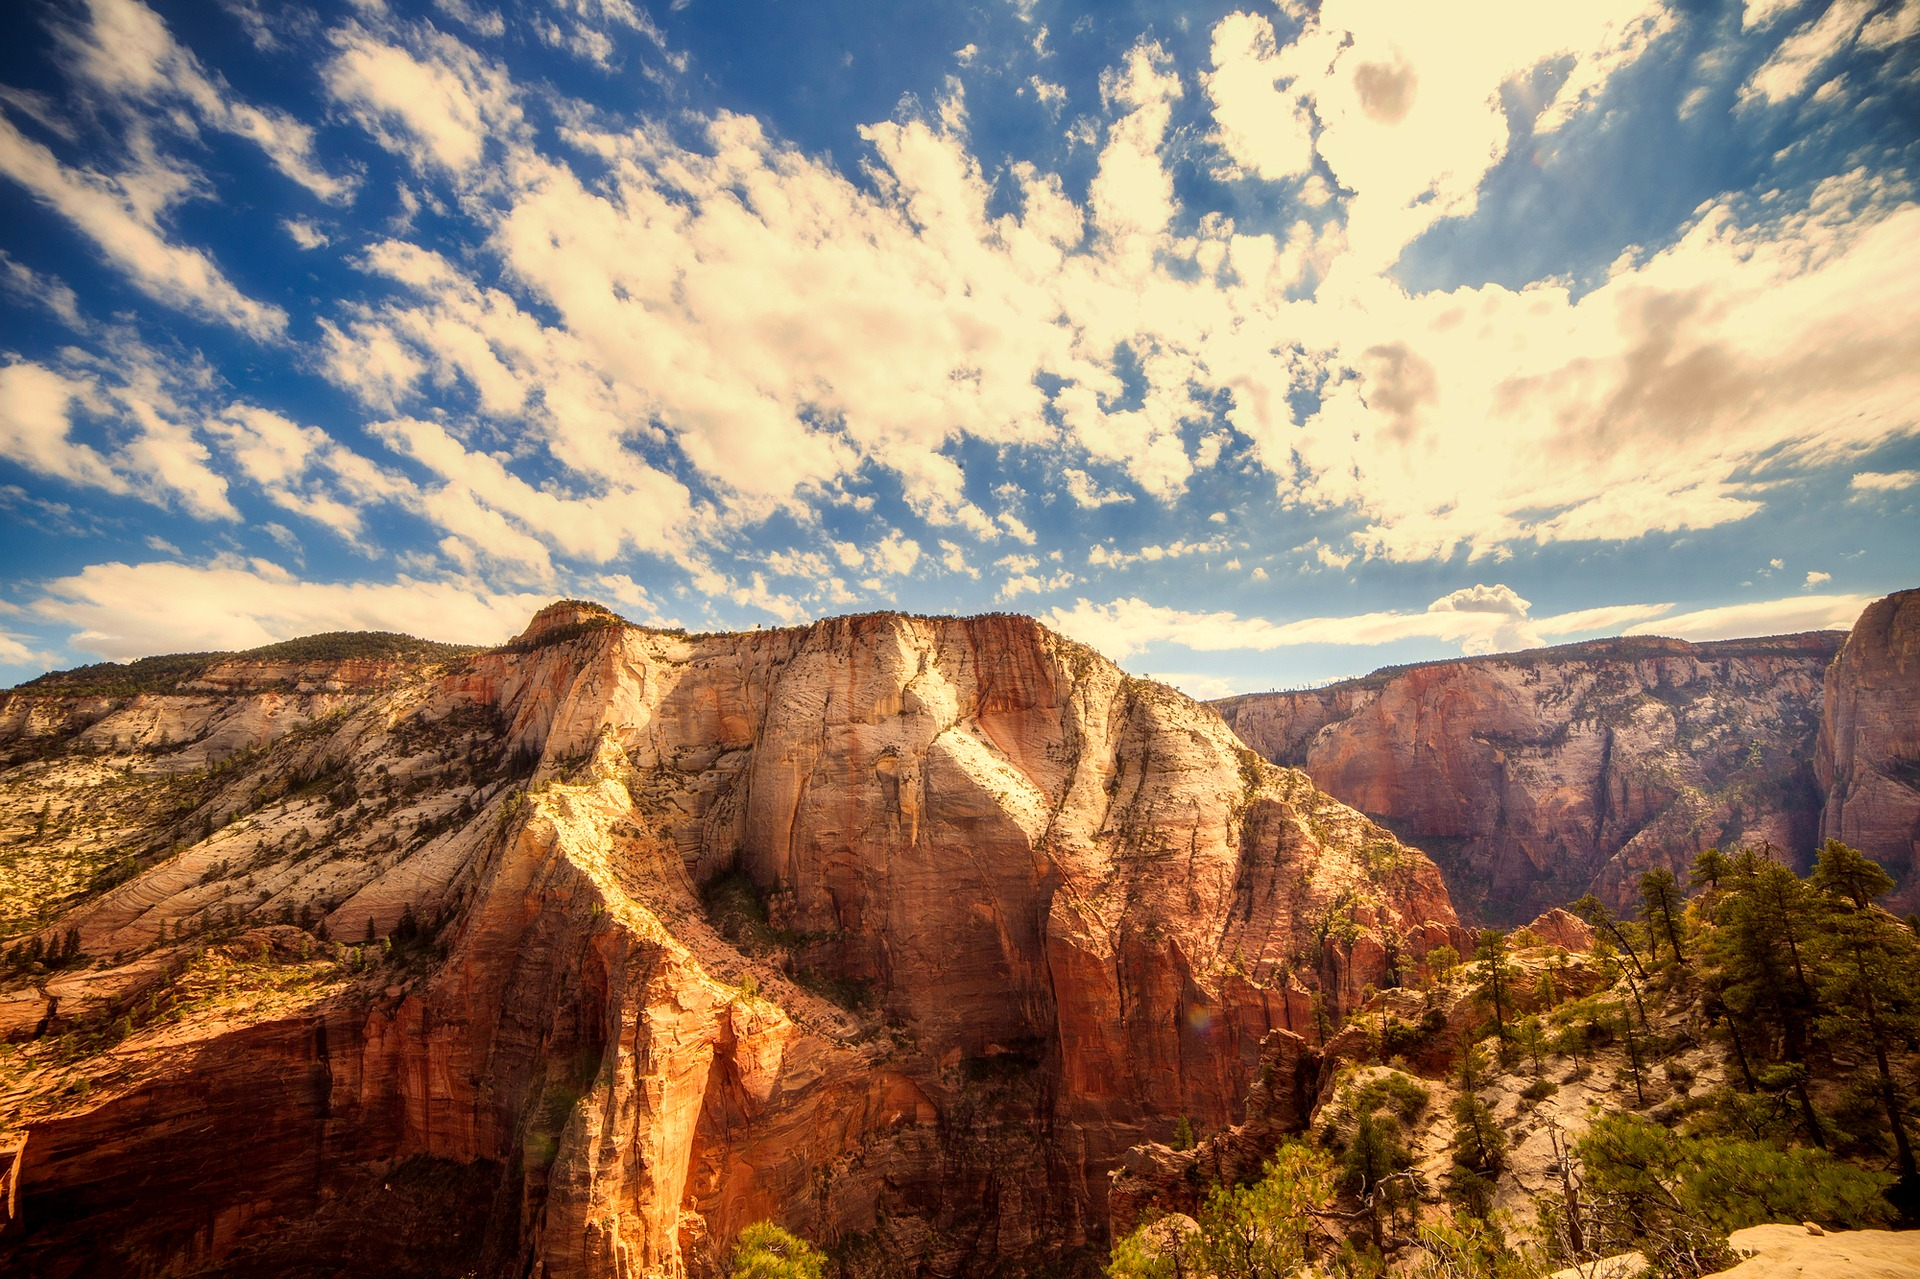 Clouds over sandstone cliffs in Zion NP